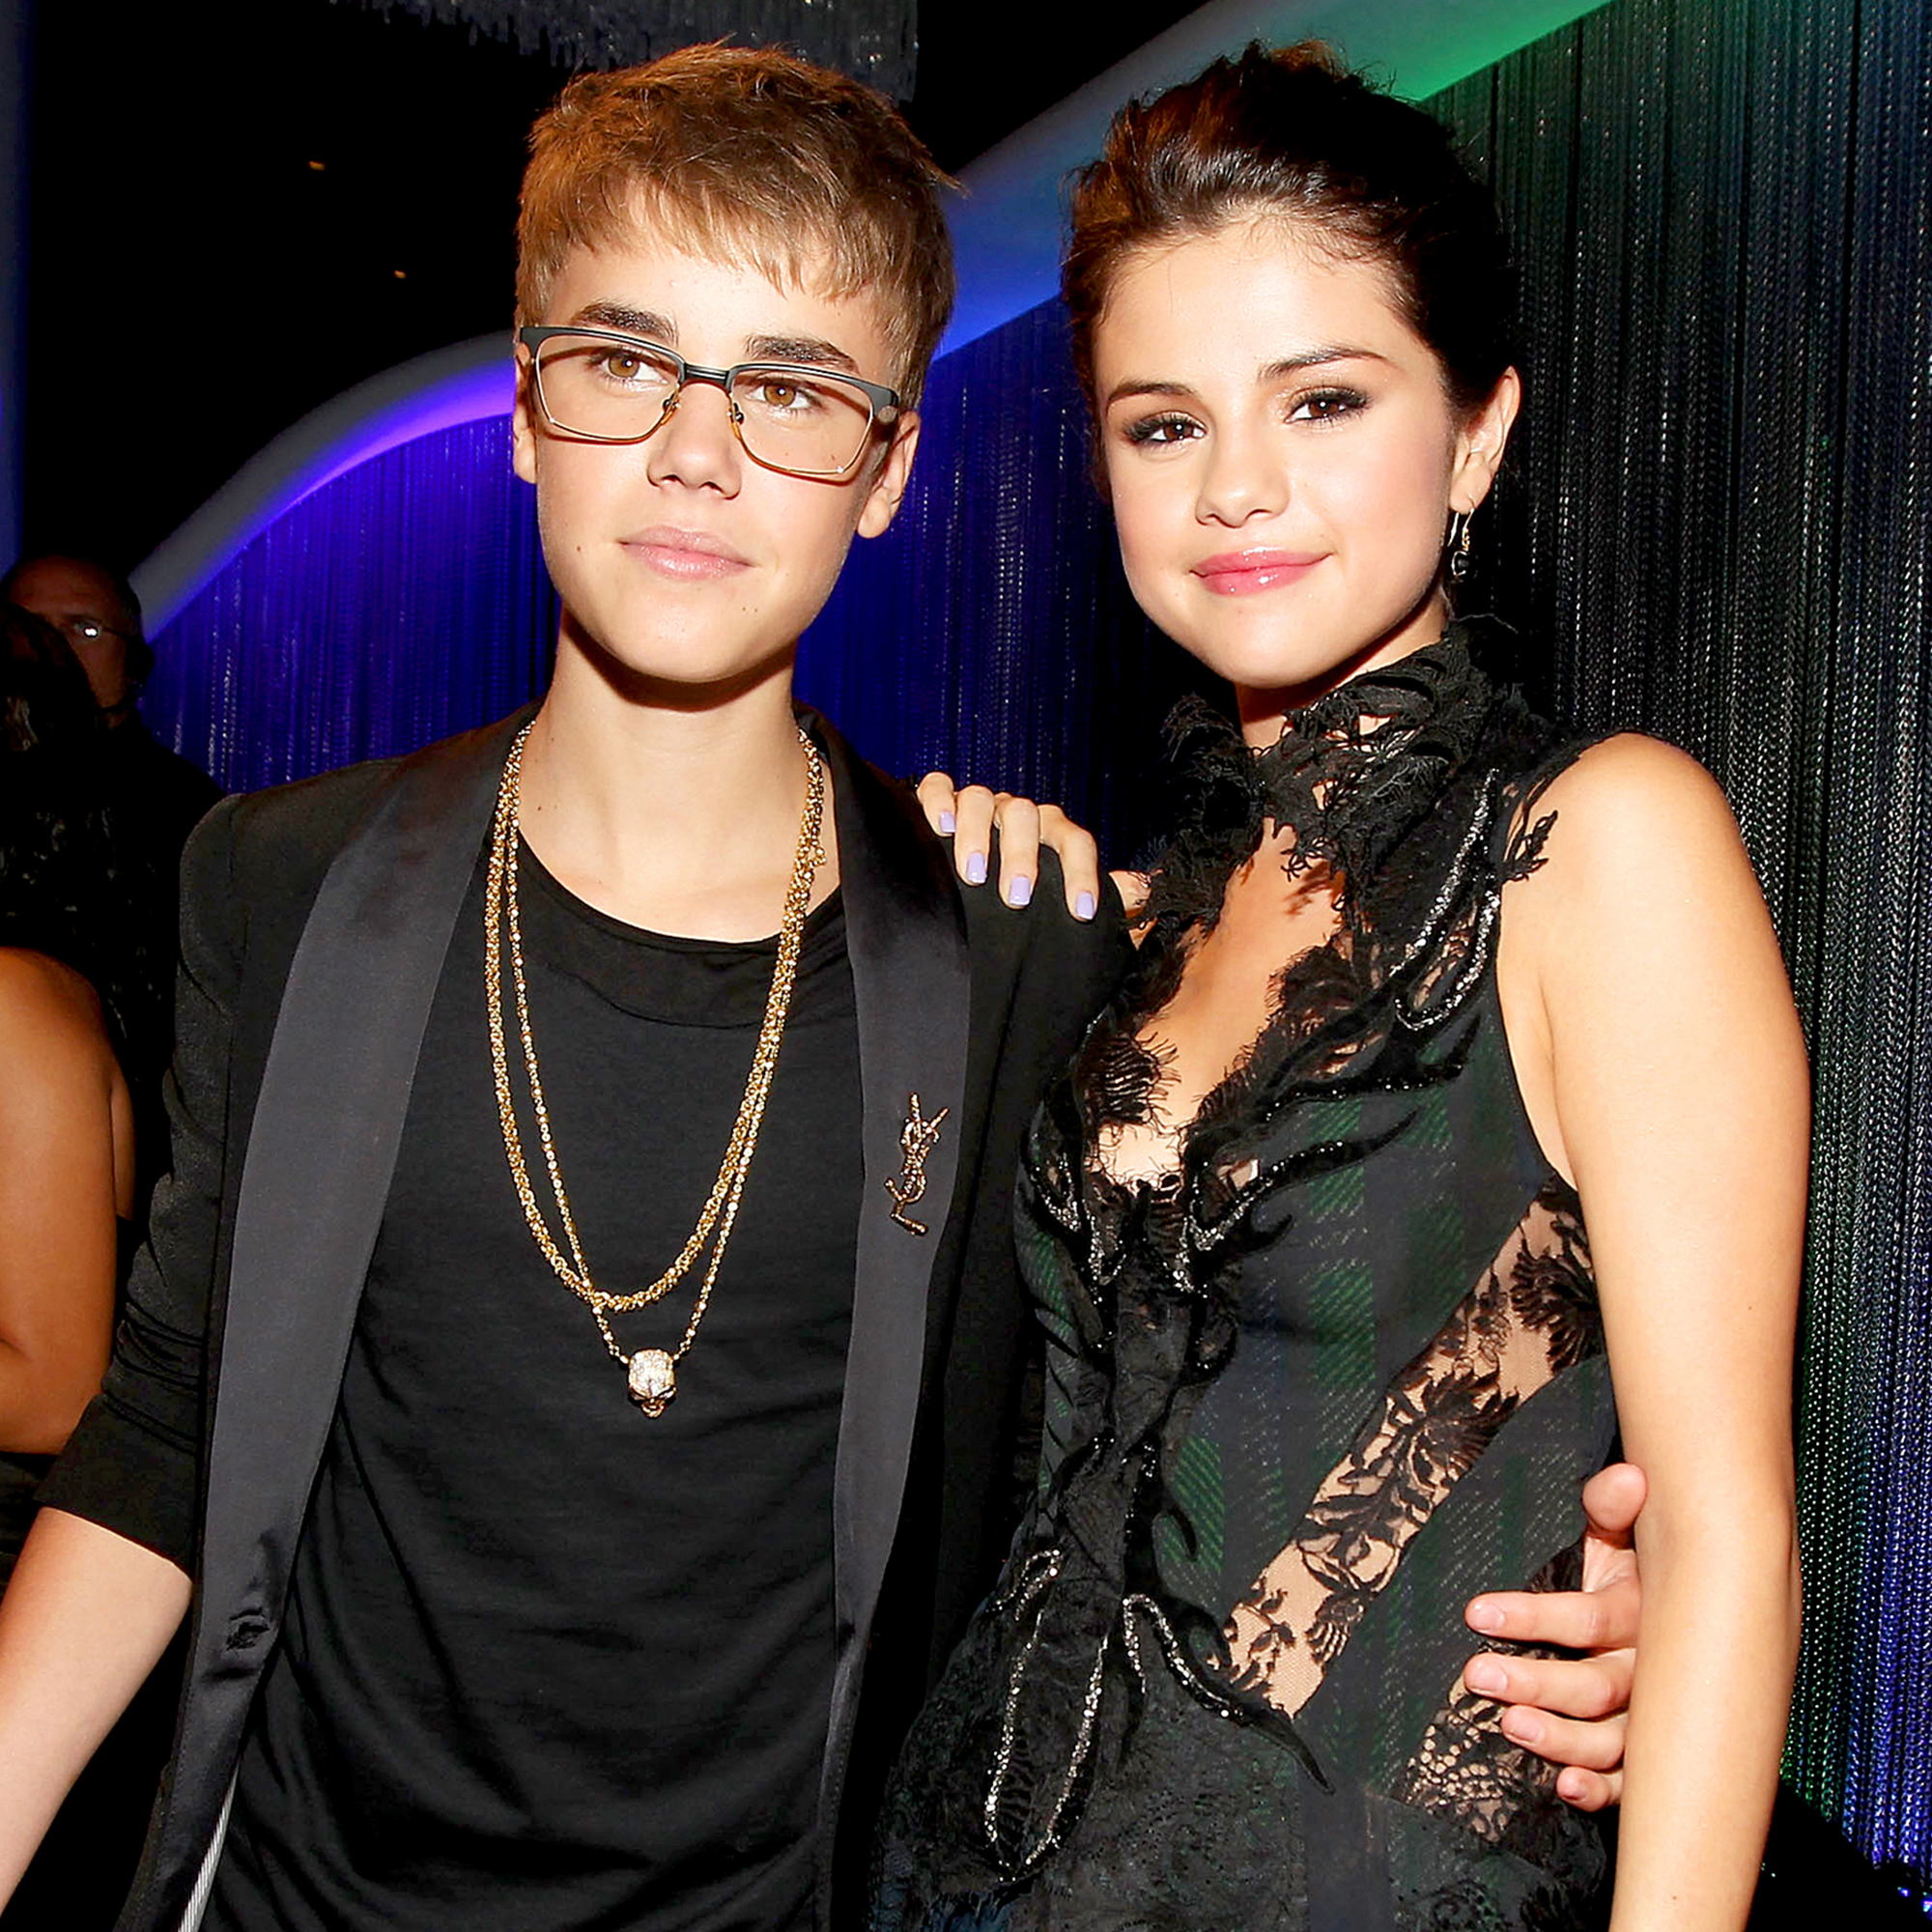 Selena Gomez's mom doesn't approve of Justin Bieber romance